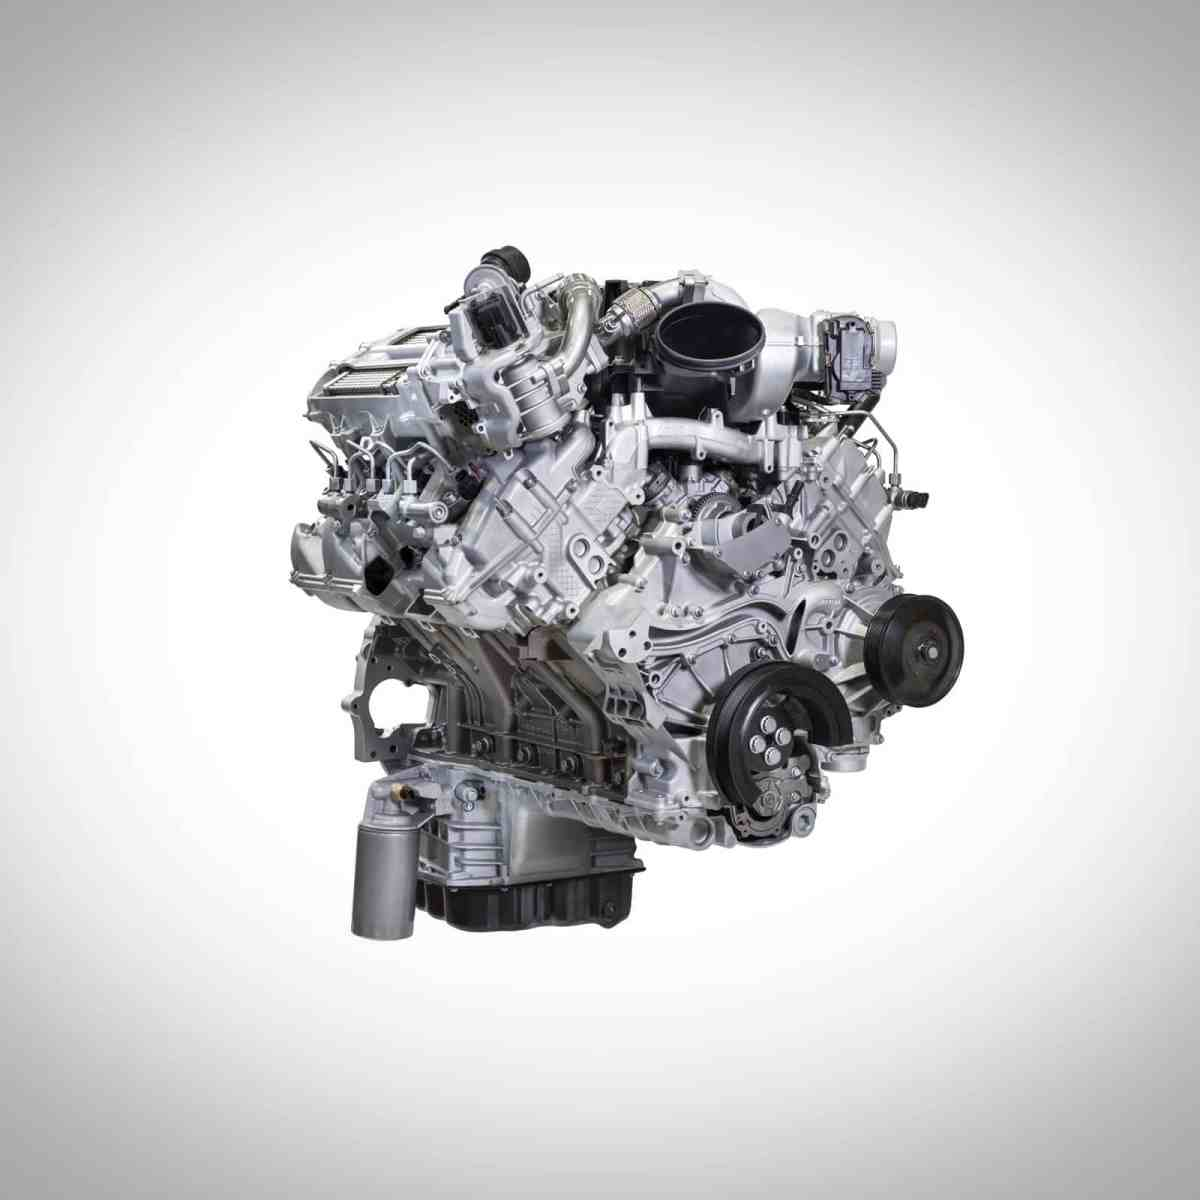 Ford's wild 7.3-liter V8 block will bring many school buses to life